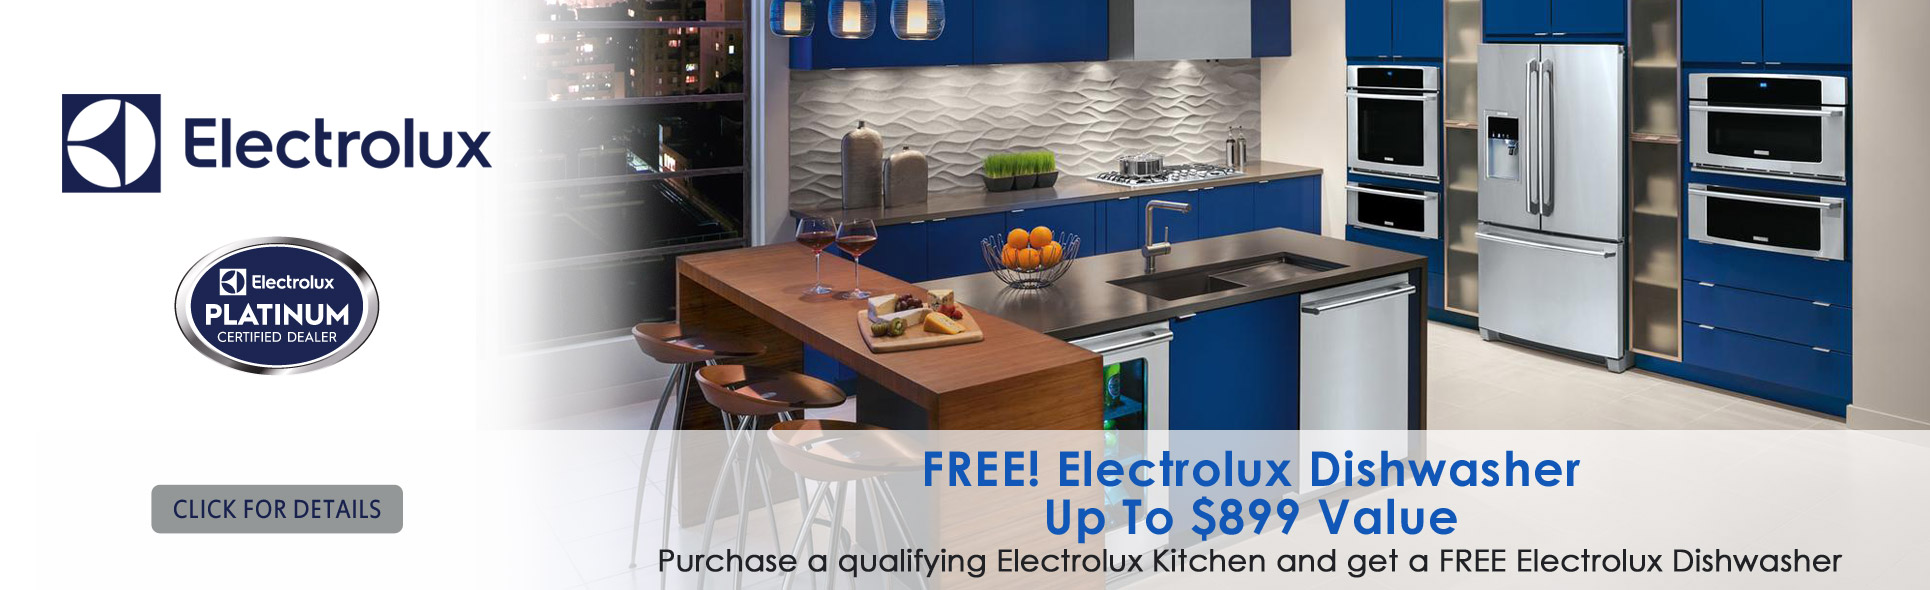 Free Electrolux Dishwasher with qualified purchase